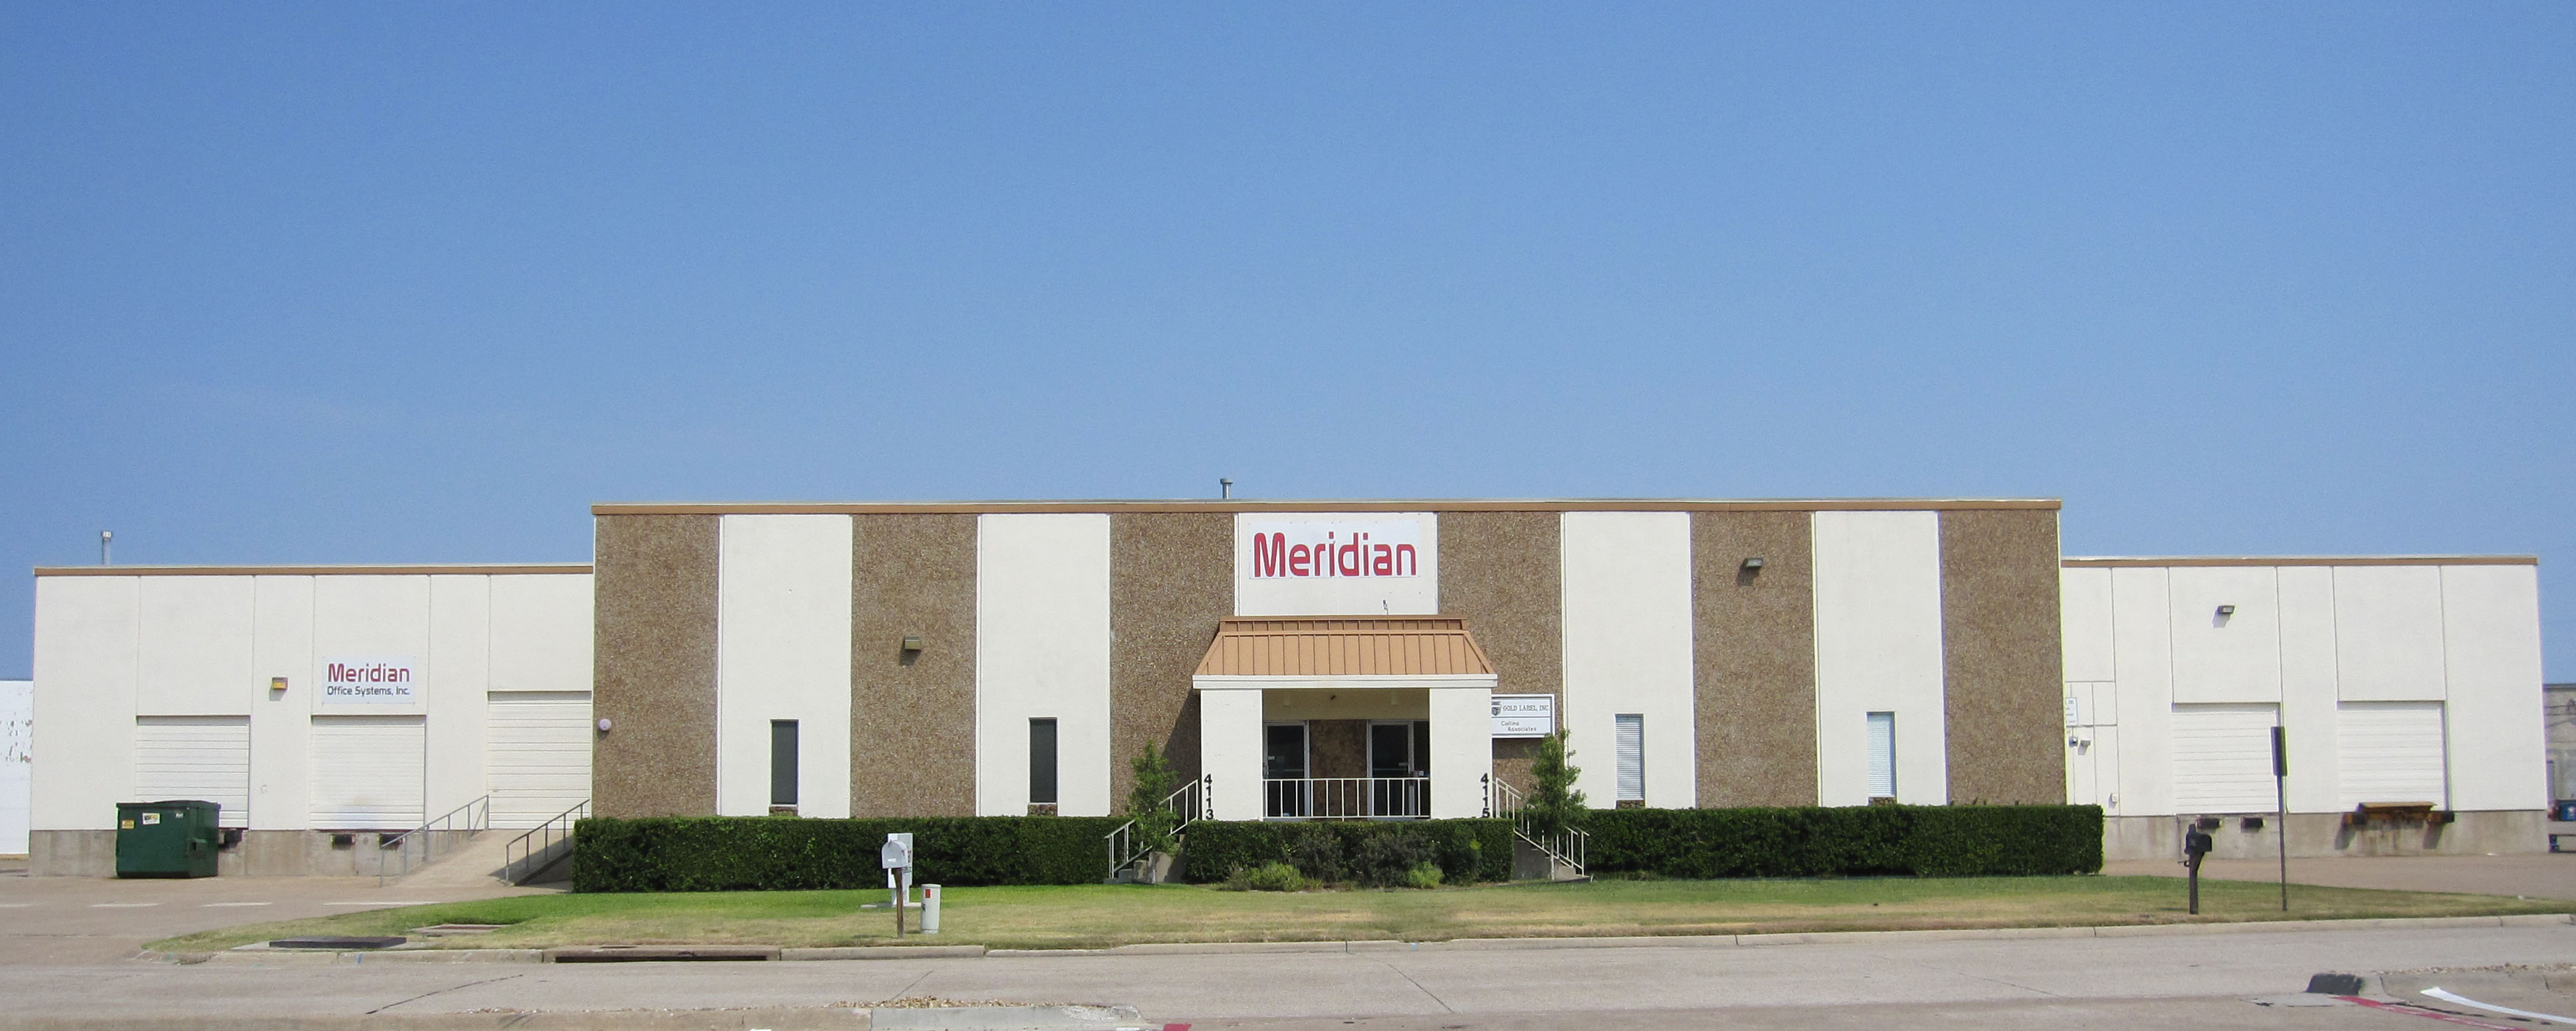 Meridian Building - Addison, Texas